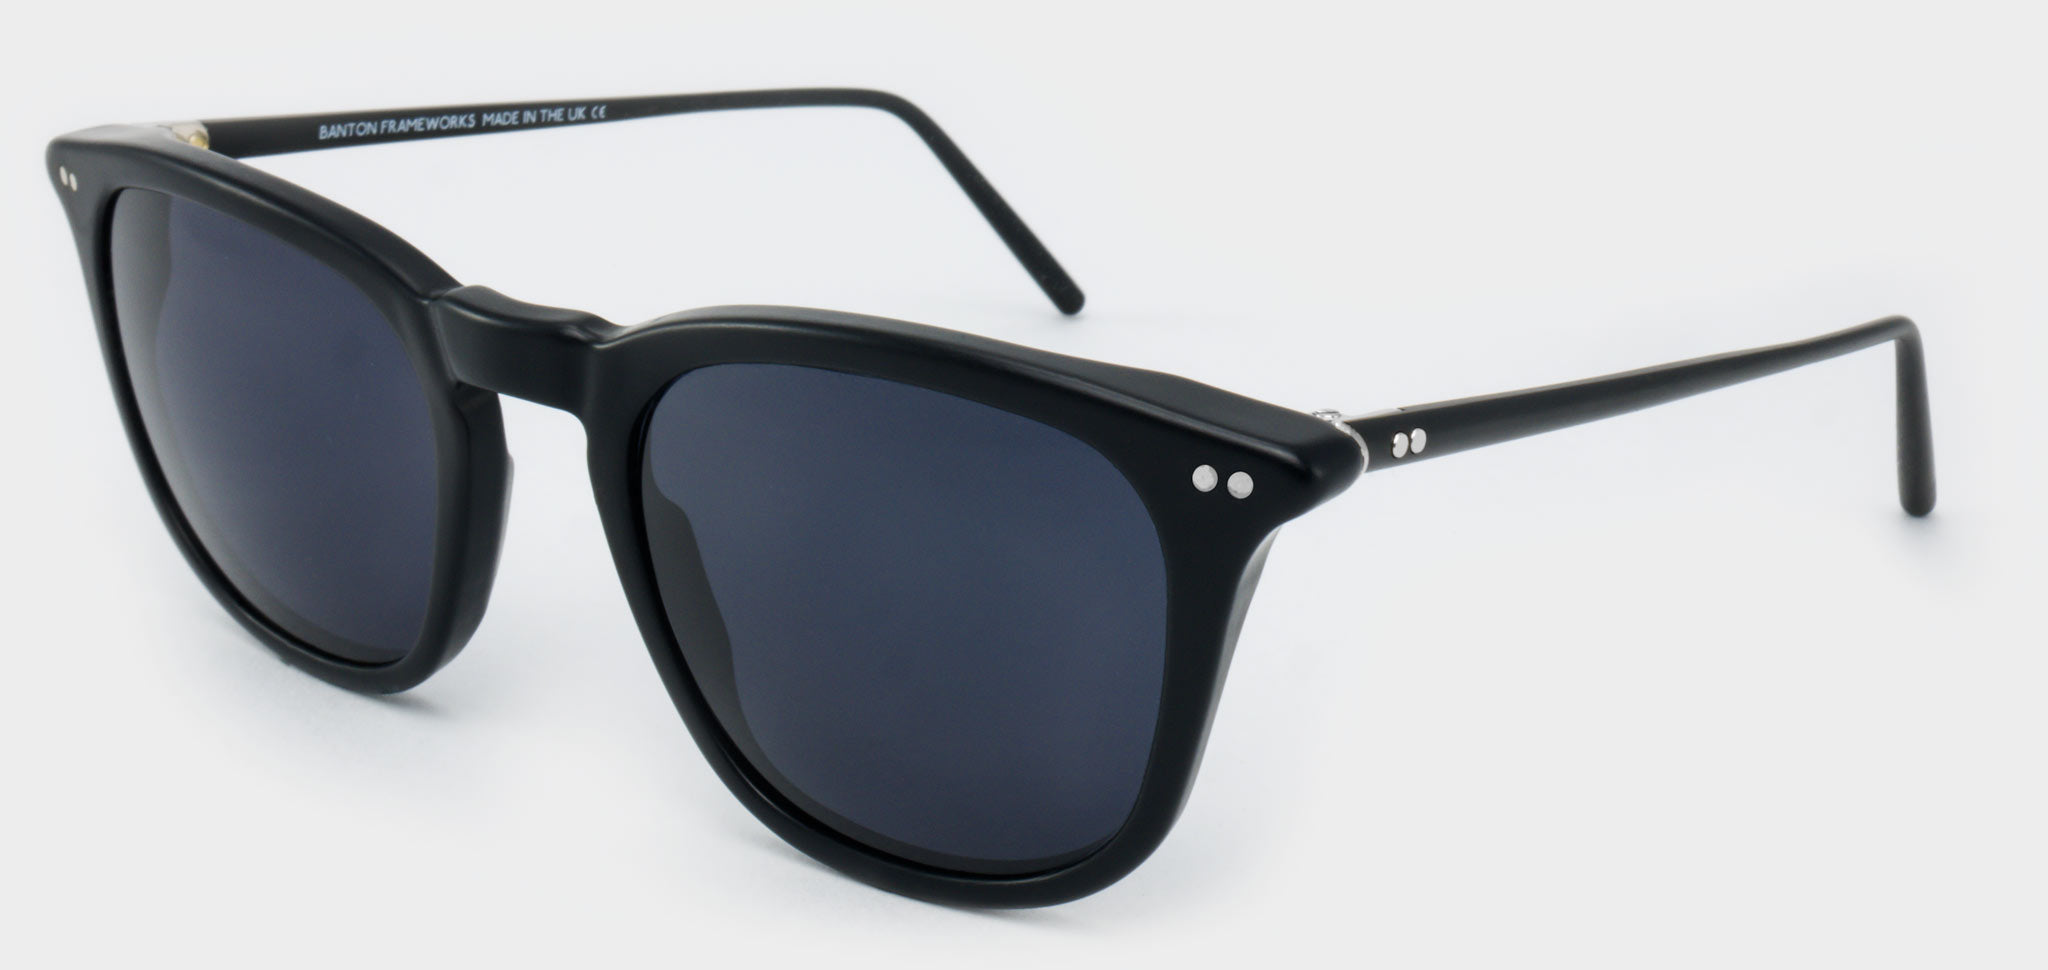 High Quality UK Made Sunglasses for women